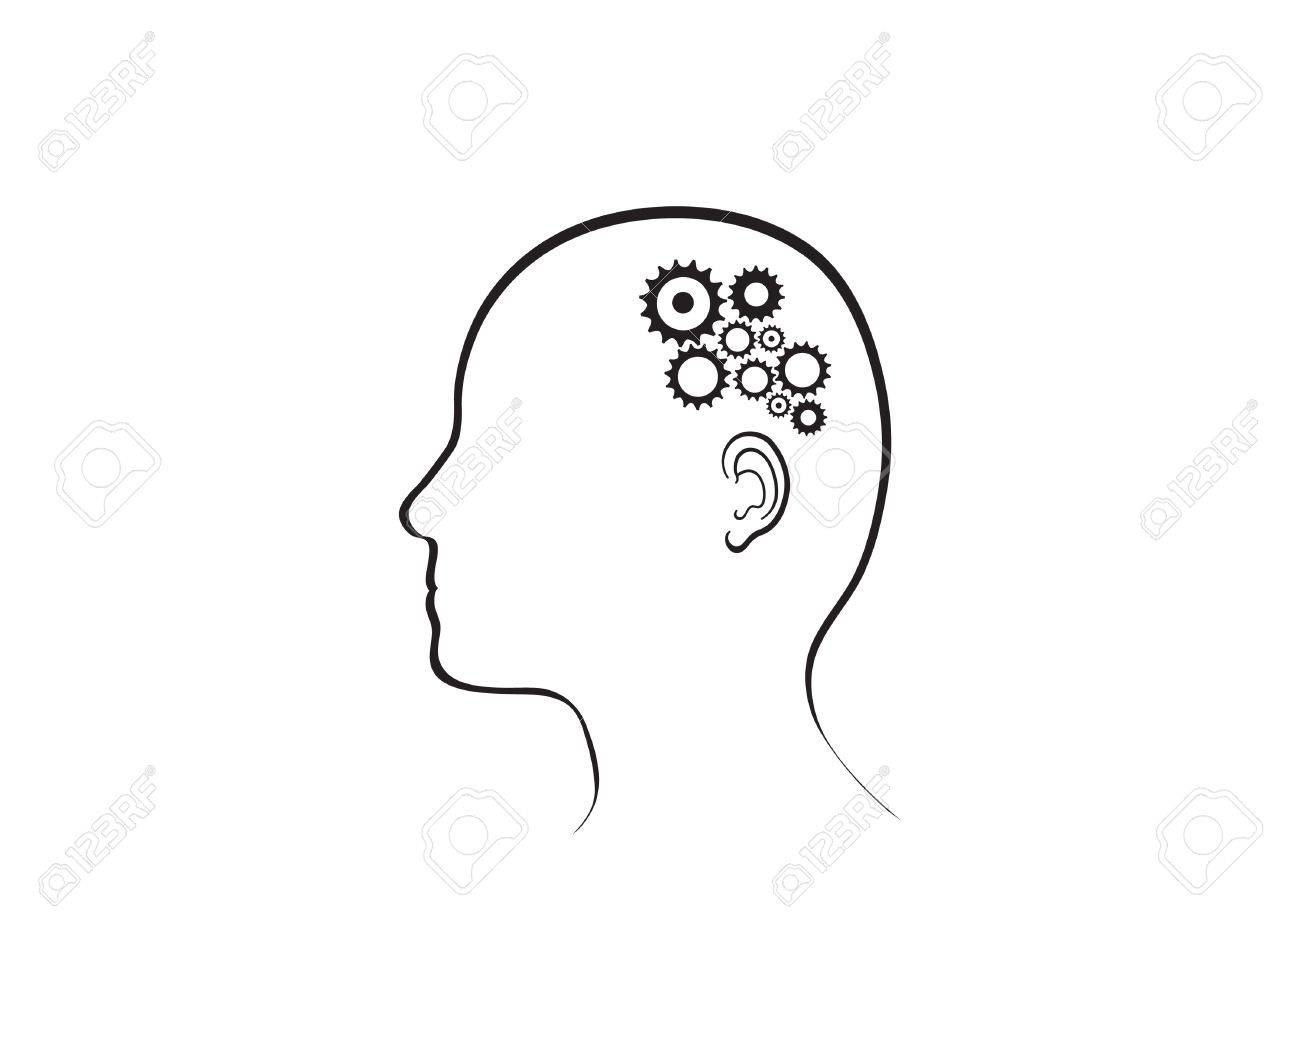 illustration depicting cogs working in the brain. Stock Vector - 11649911